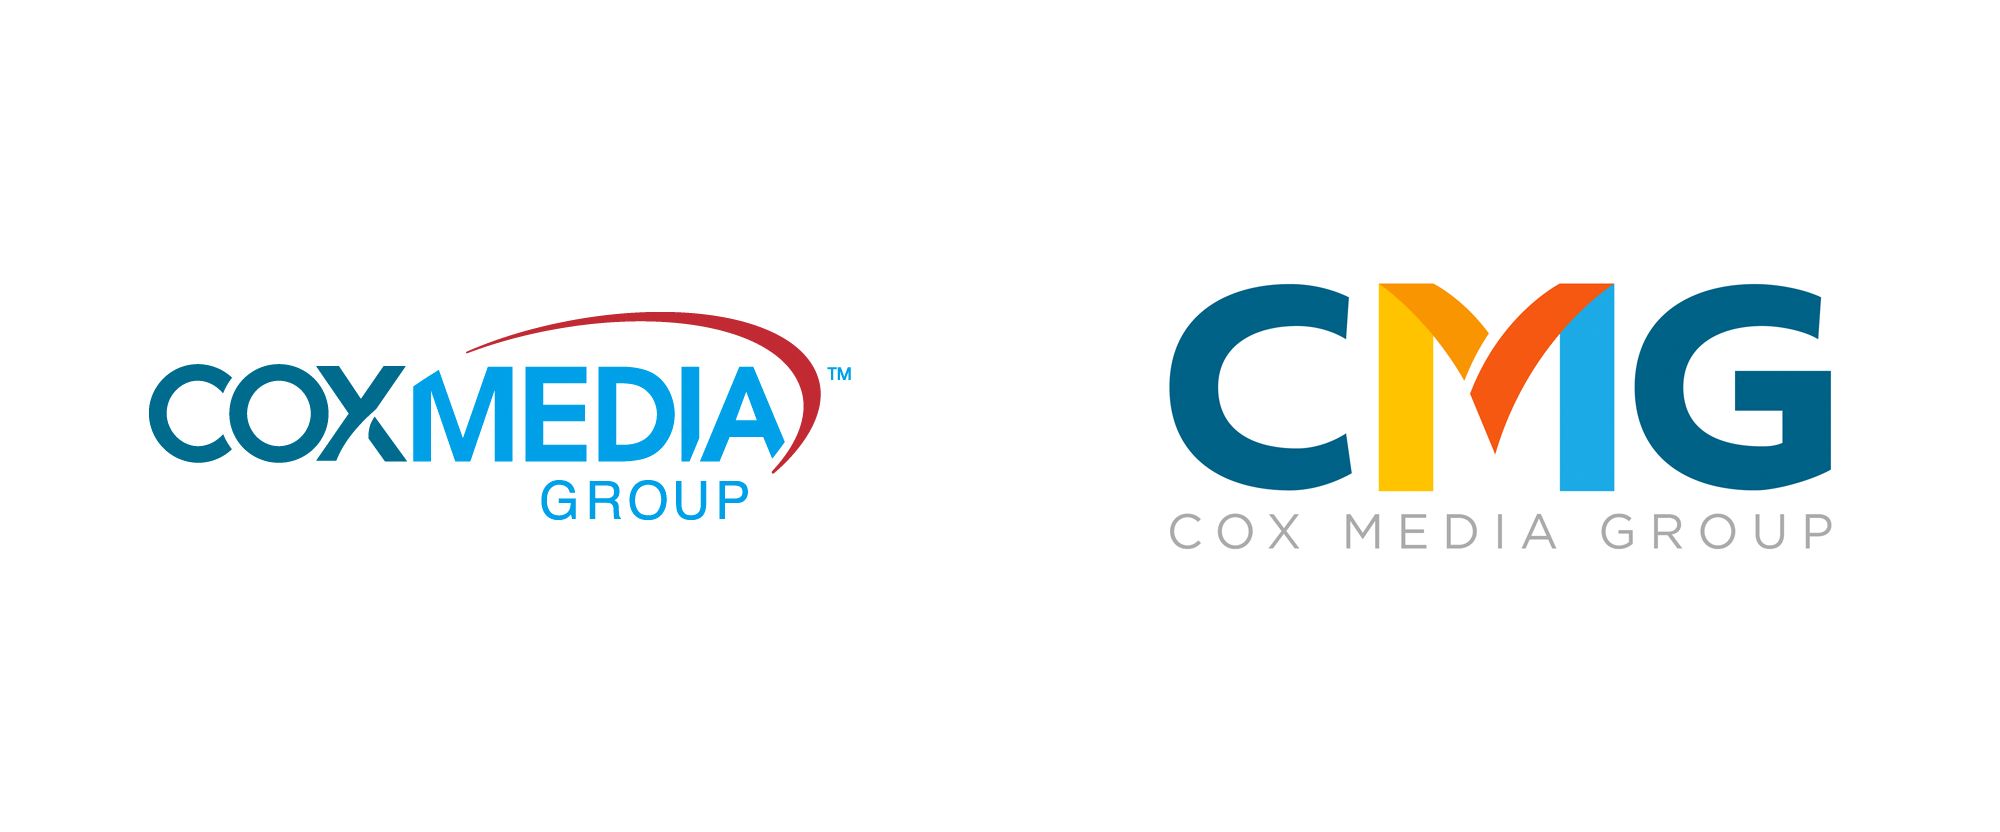 New Logo for Cox Media Group done In-house (as a Contest)